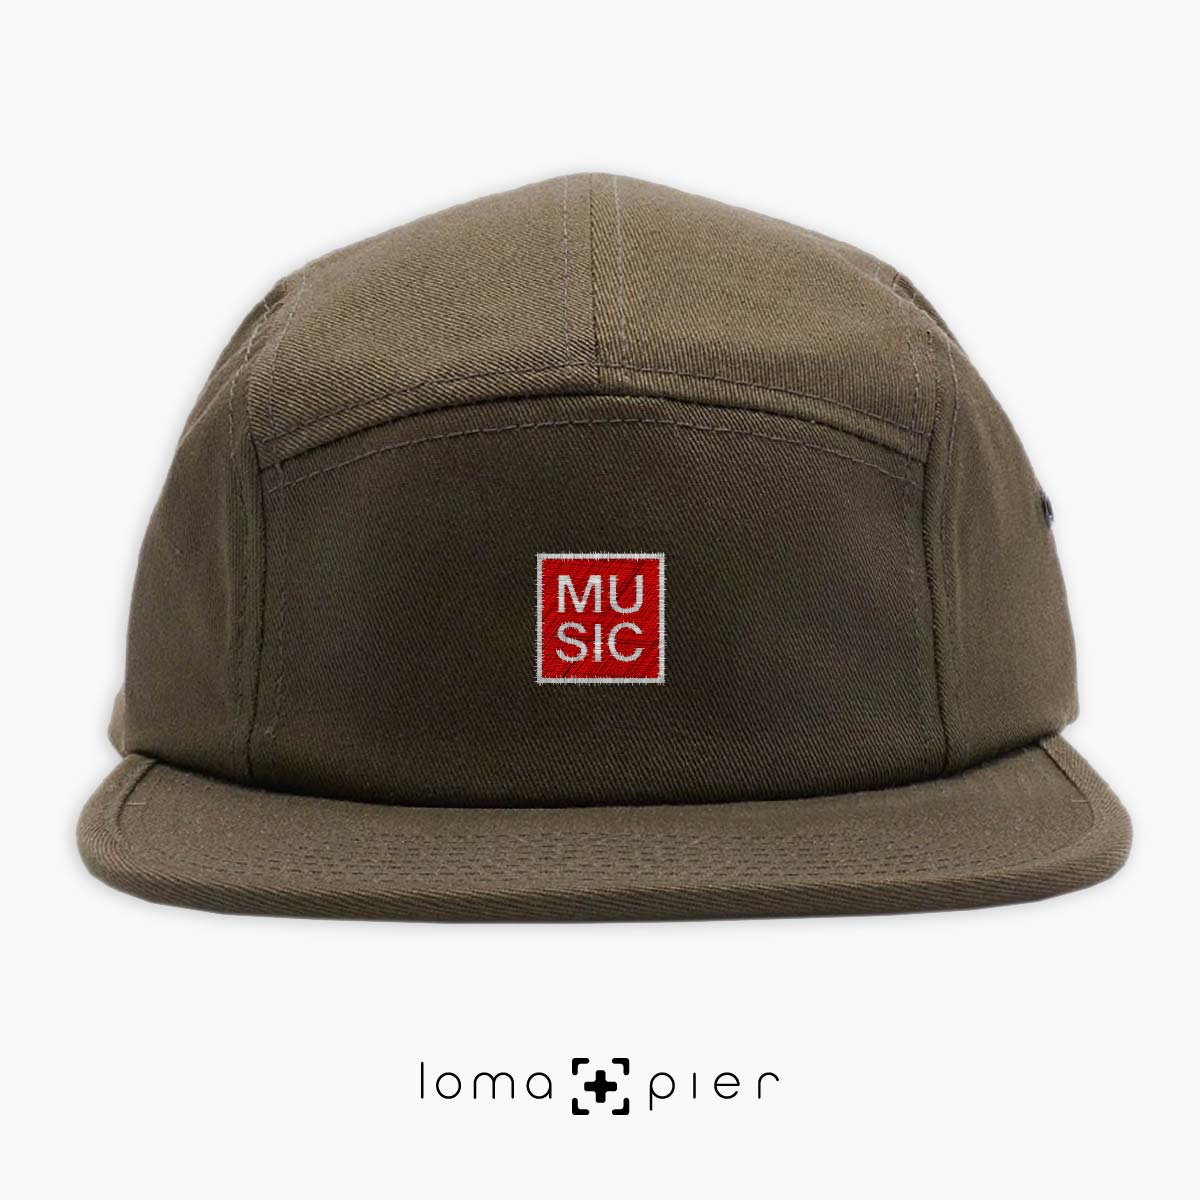 MUSIC BOX cotton 5-panel hat in olive green by loma+pier hat store